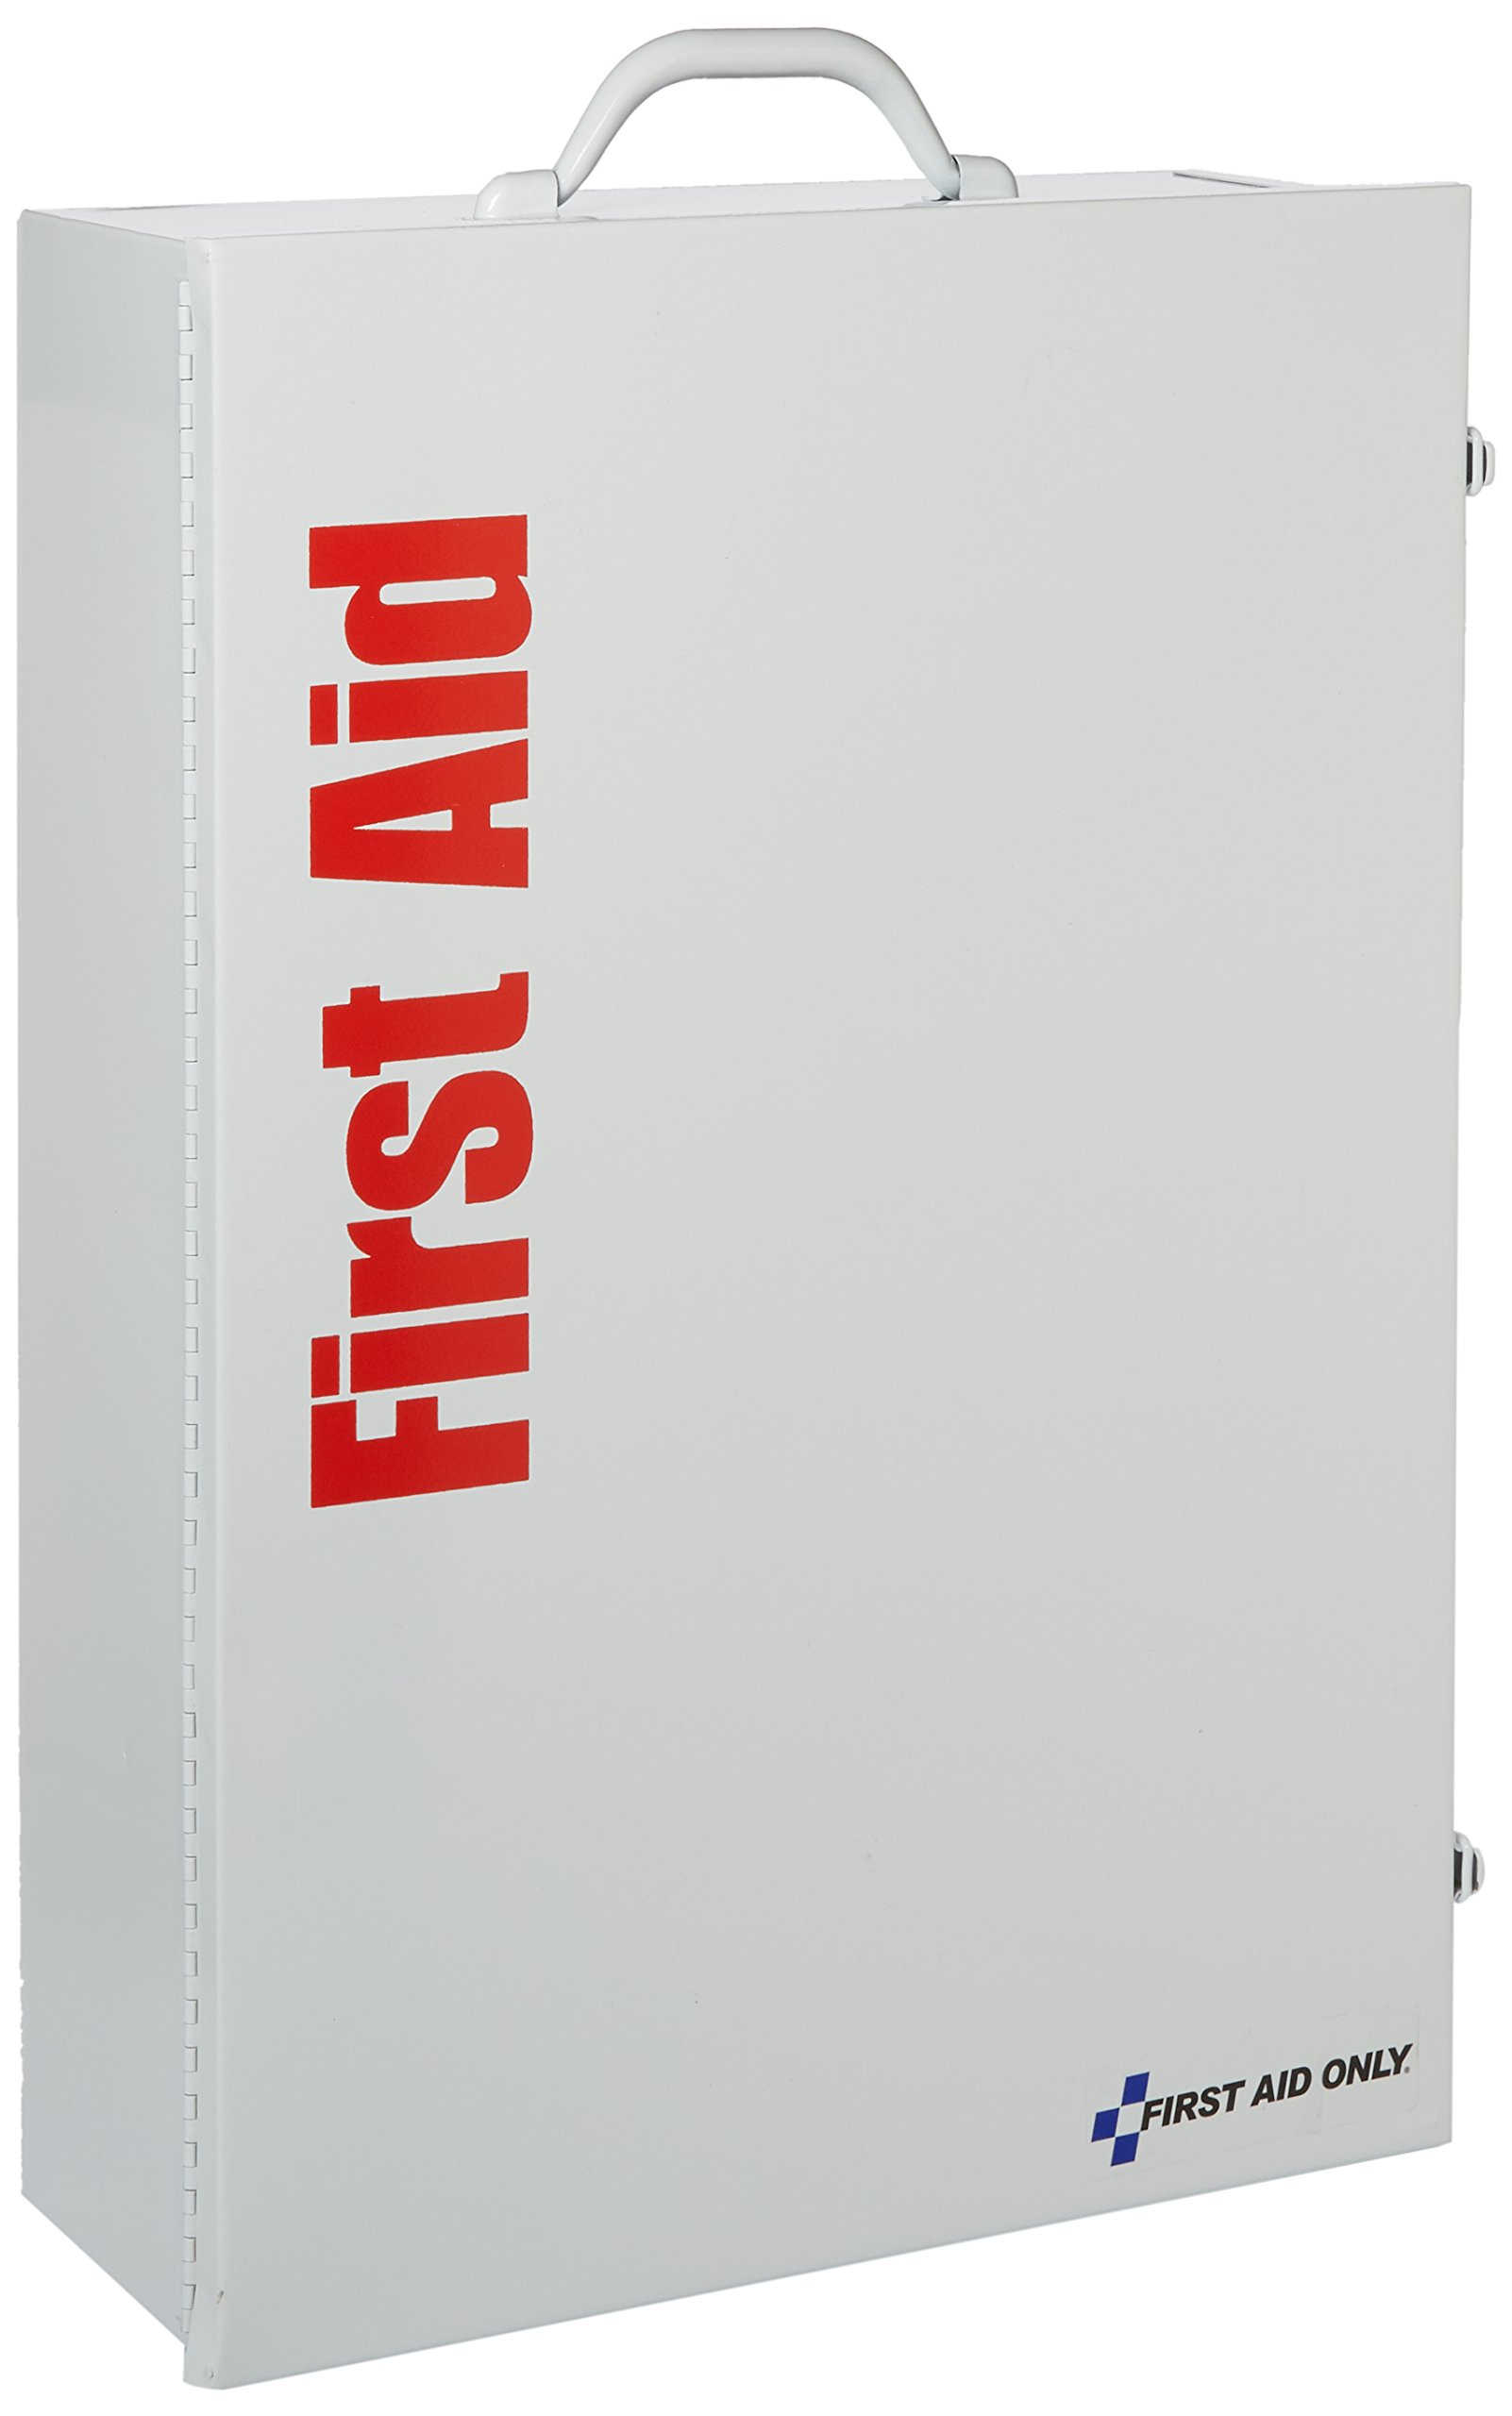 First Aid Only 4 Shelf Industrial First Aid Station with Pocket Liner